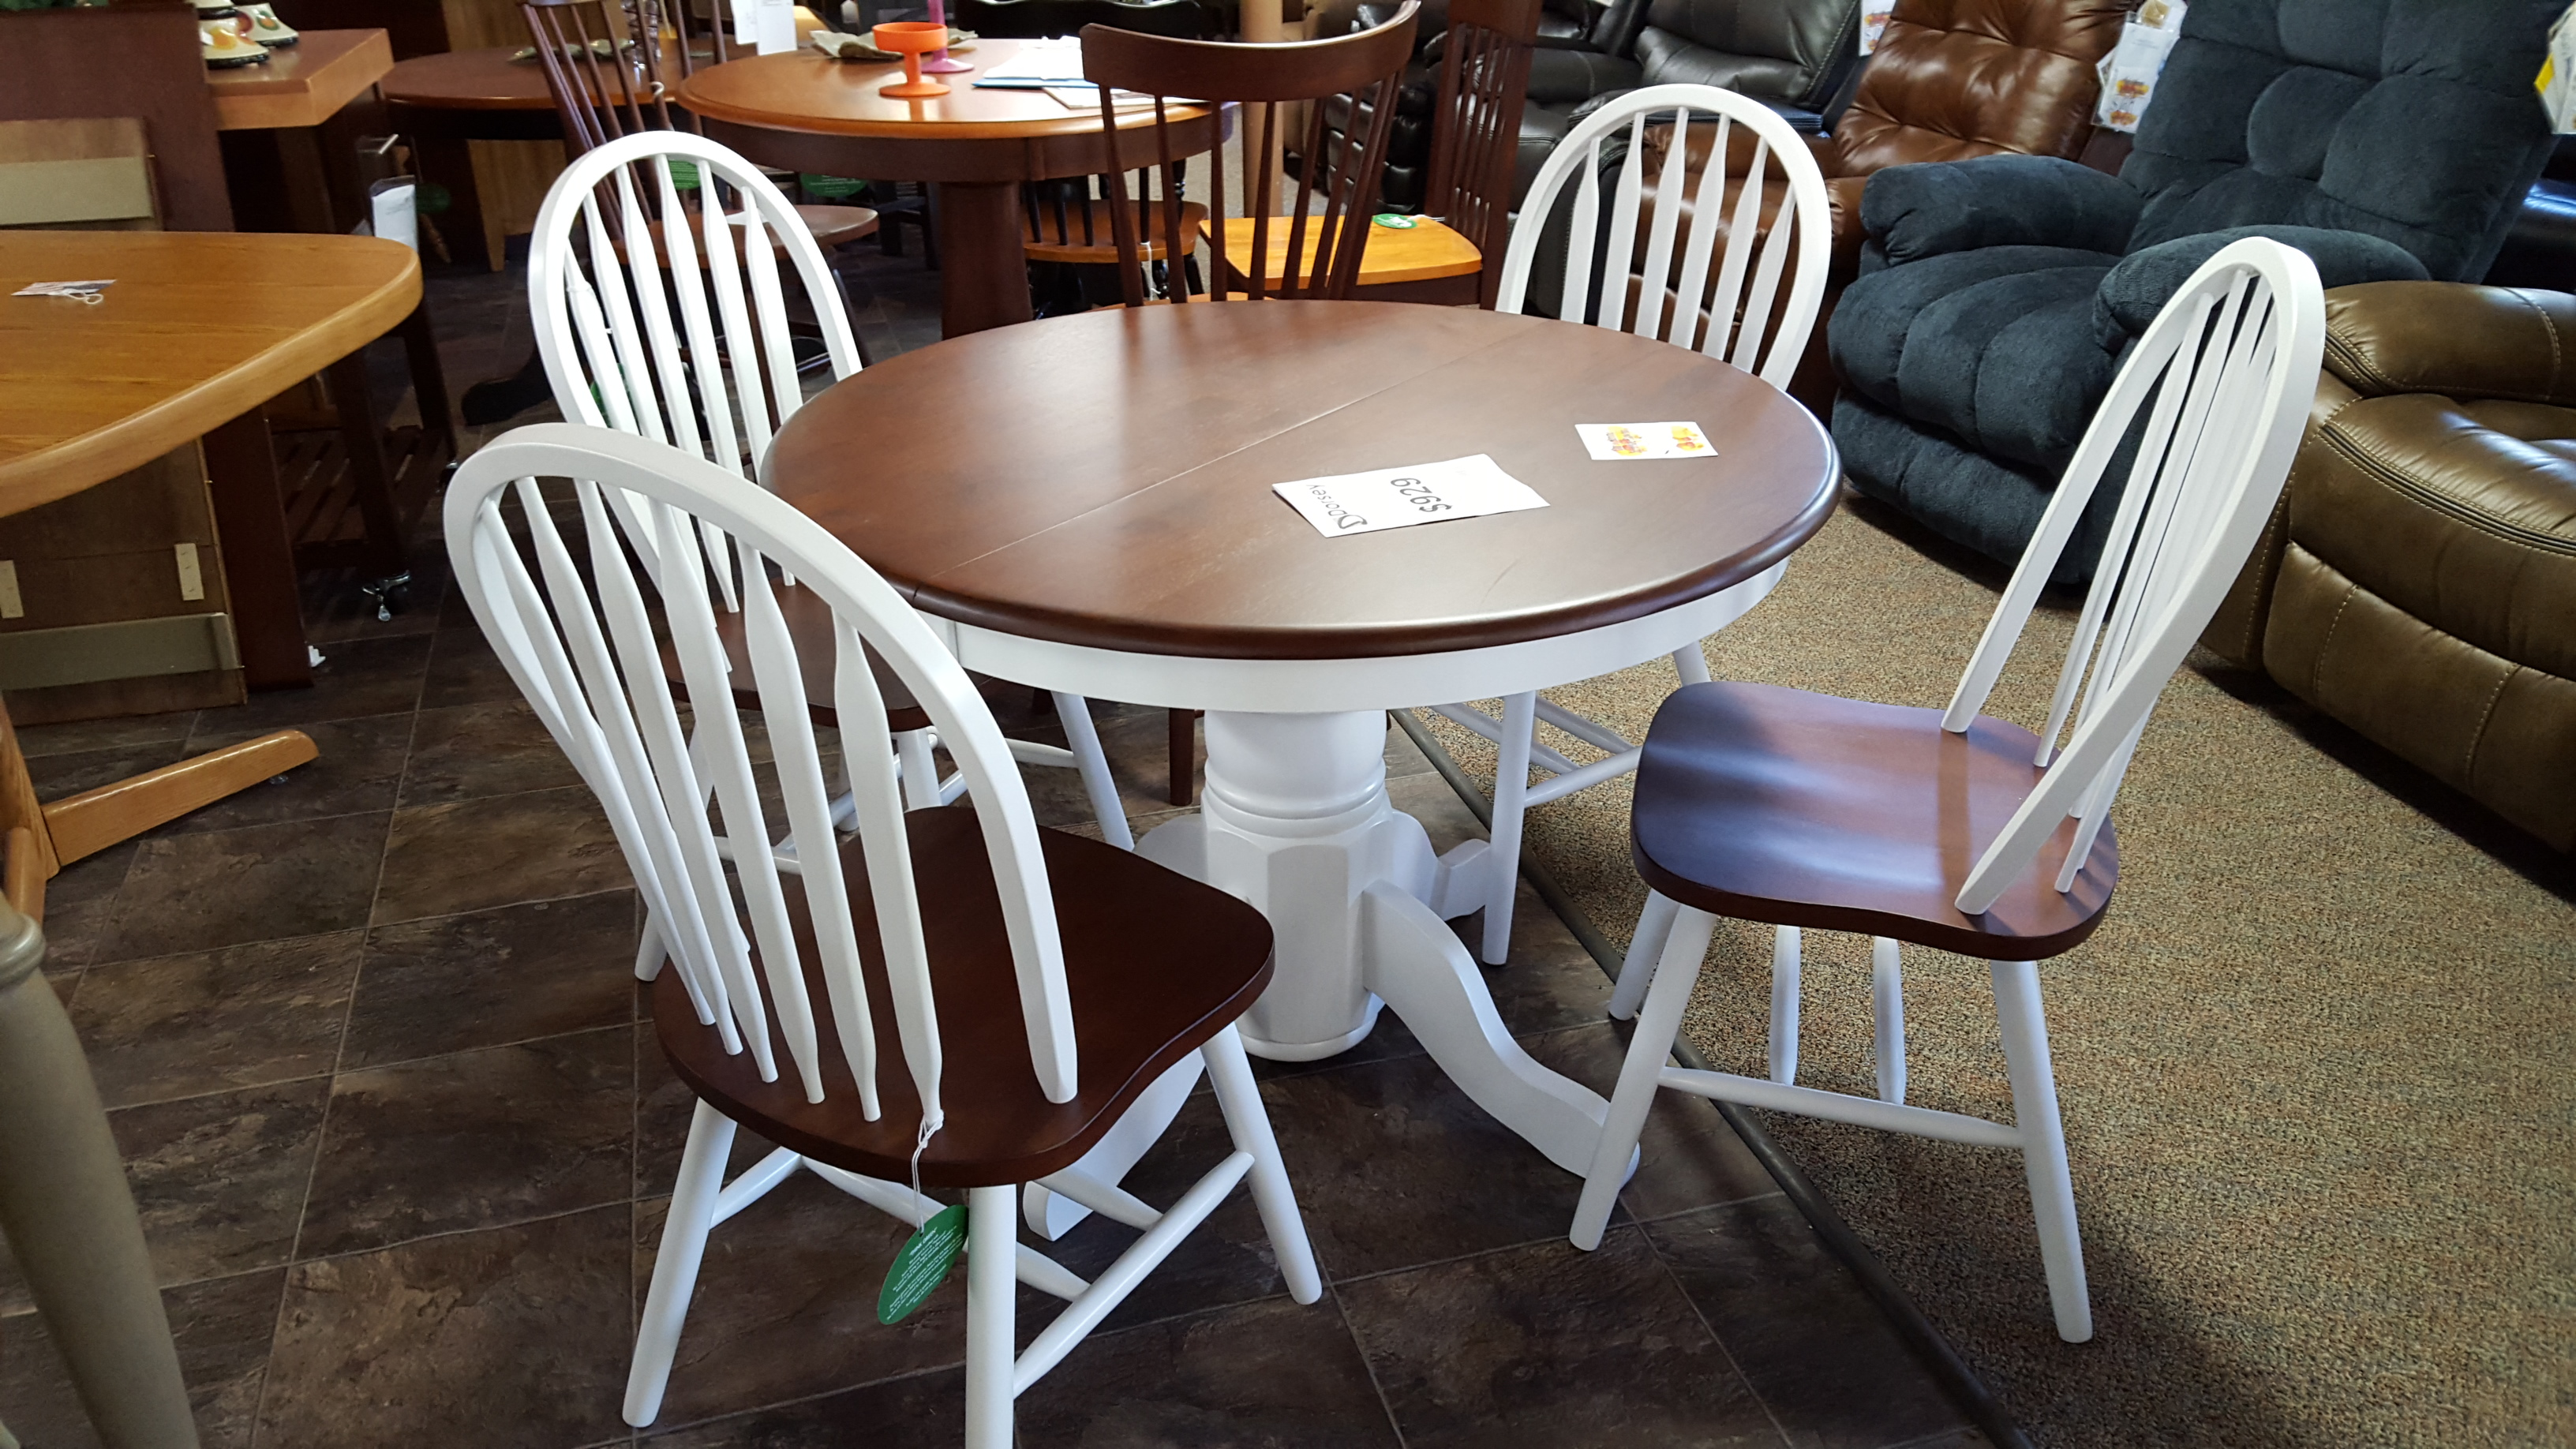 Sensational Wc4260Ped Table With Wcj5300 Chairs Furniture Store Bangor Beutiful Home Inspiration Ommitmahrainfo